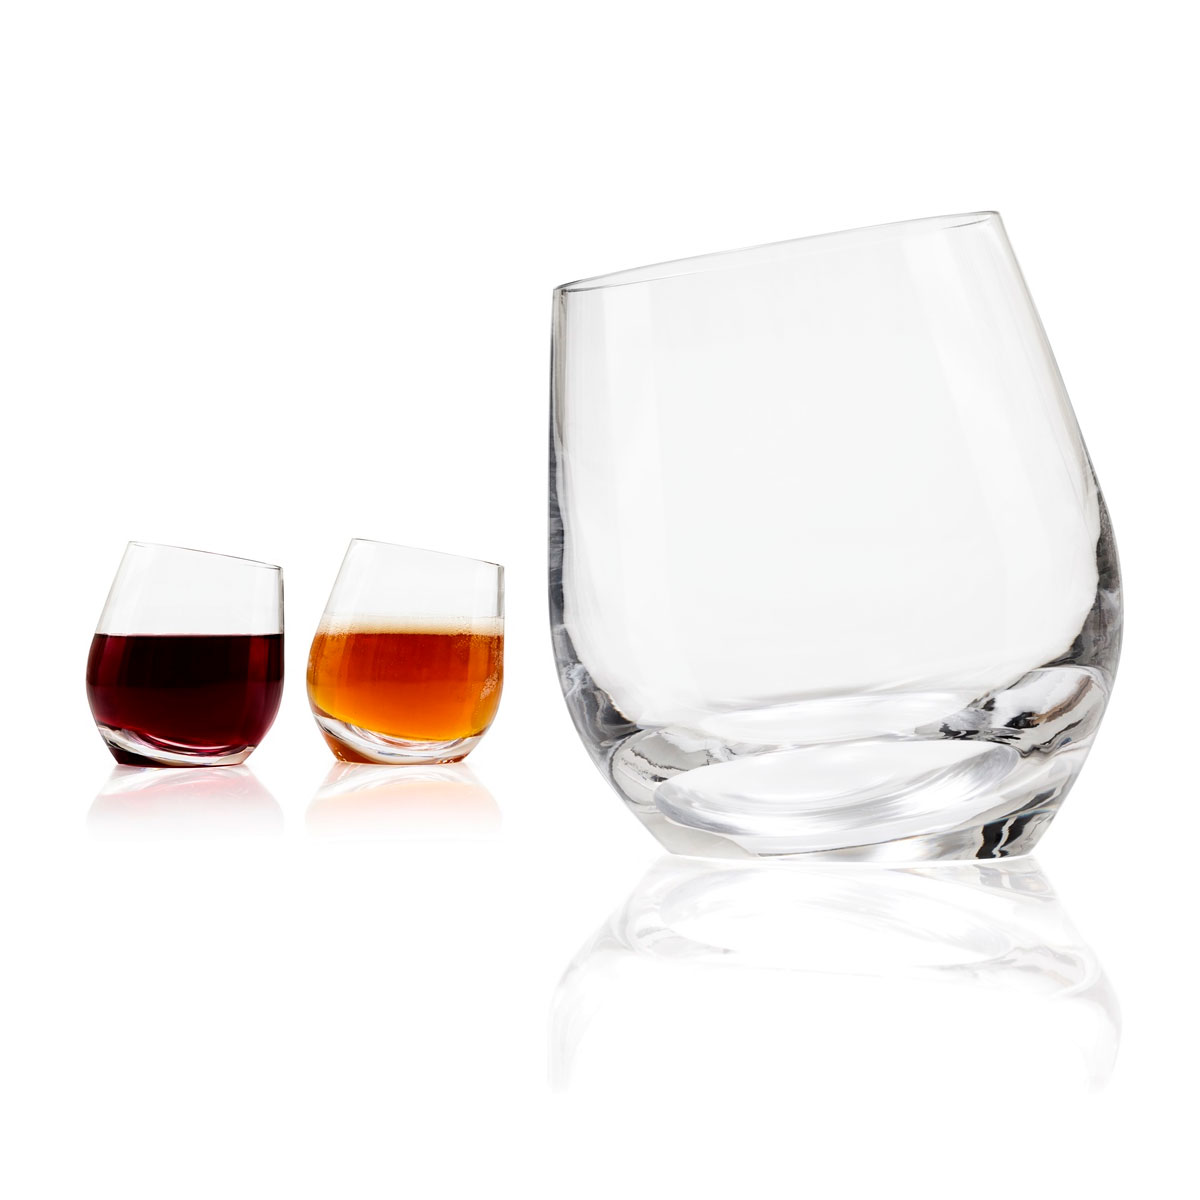 Drinking Glasses Designs Tonfisk Shadow Red Wine Beer Drinking Glass Set Of 2